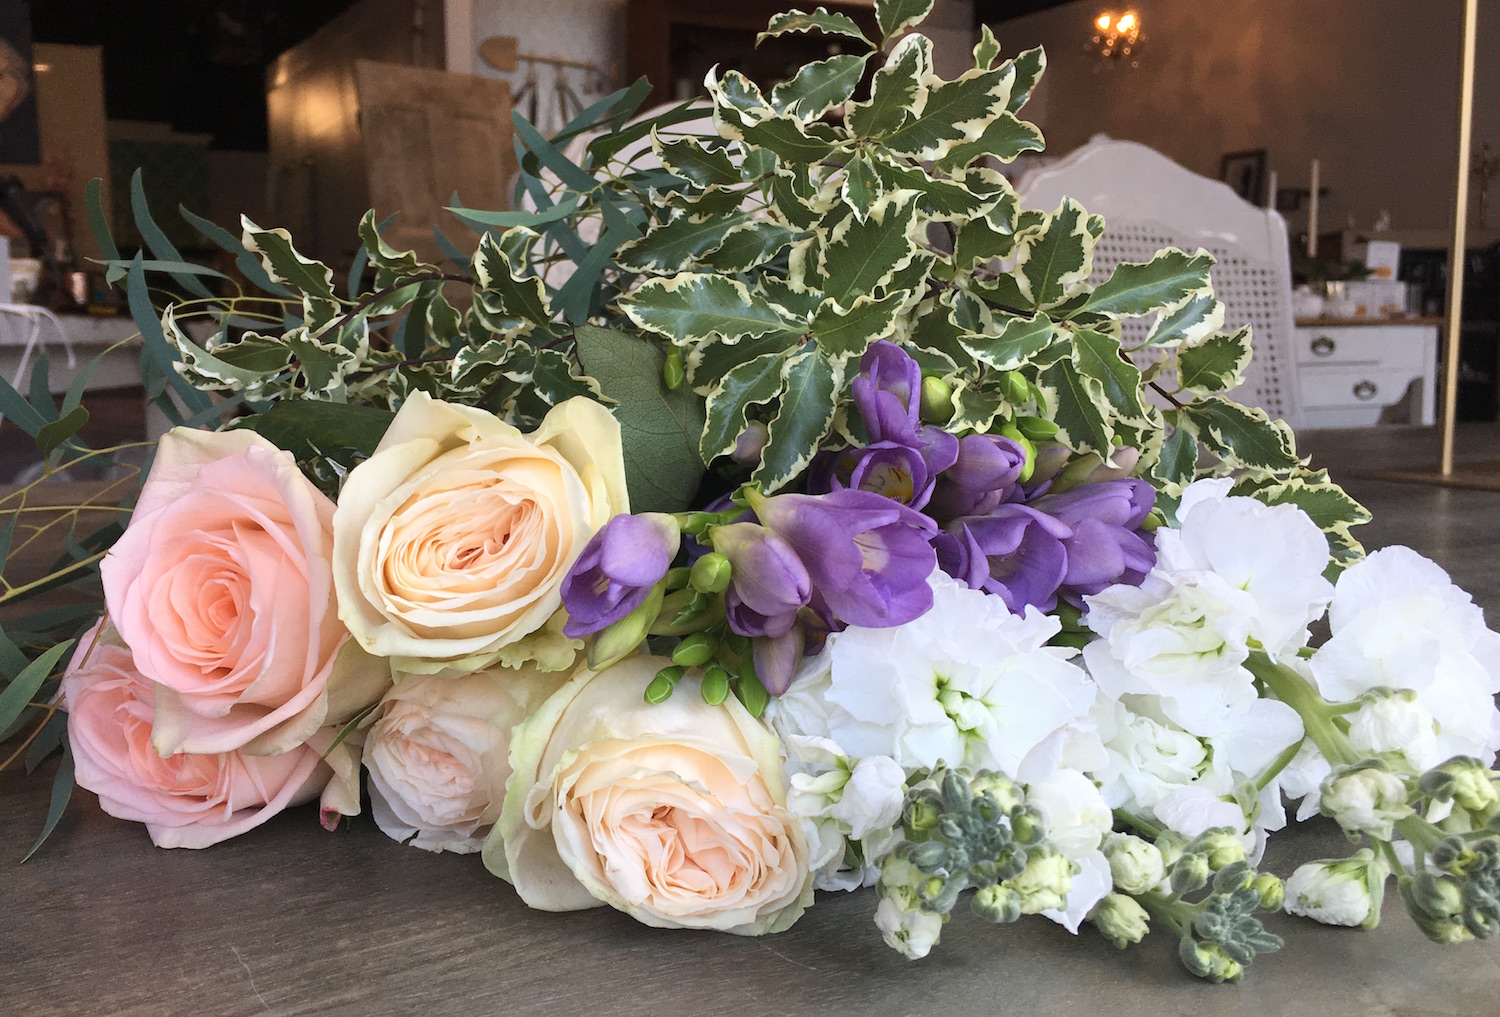 From left to right: Peach roses, cream Garden Roses, purple Freesia, white Stock. On top Feathered Eucalyptus and Variegated Pittosporum.